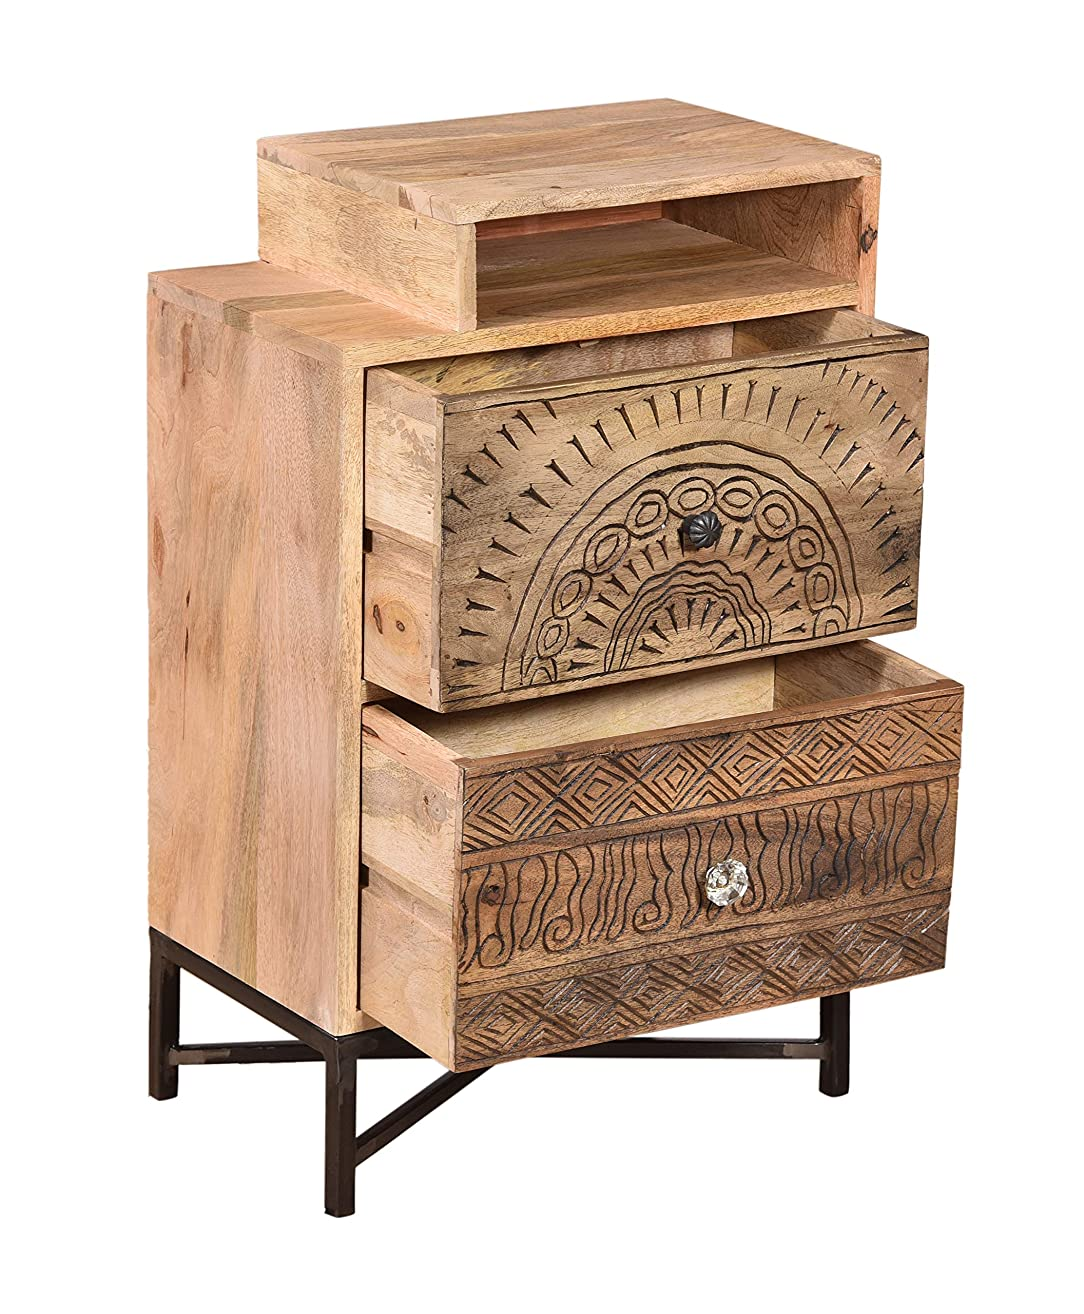 Wooden Carving 2 Drawer Open shelf Bedside Table Handmade Lamp Stand Side Table Wooden Hand carved side Table End Table